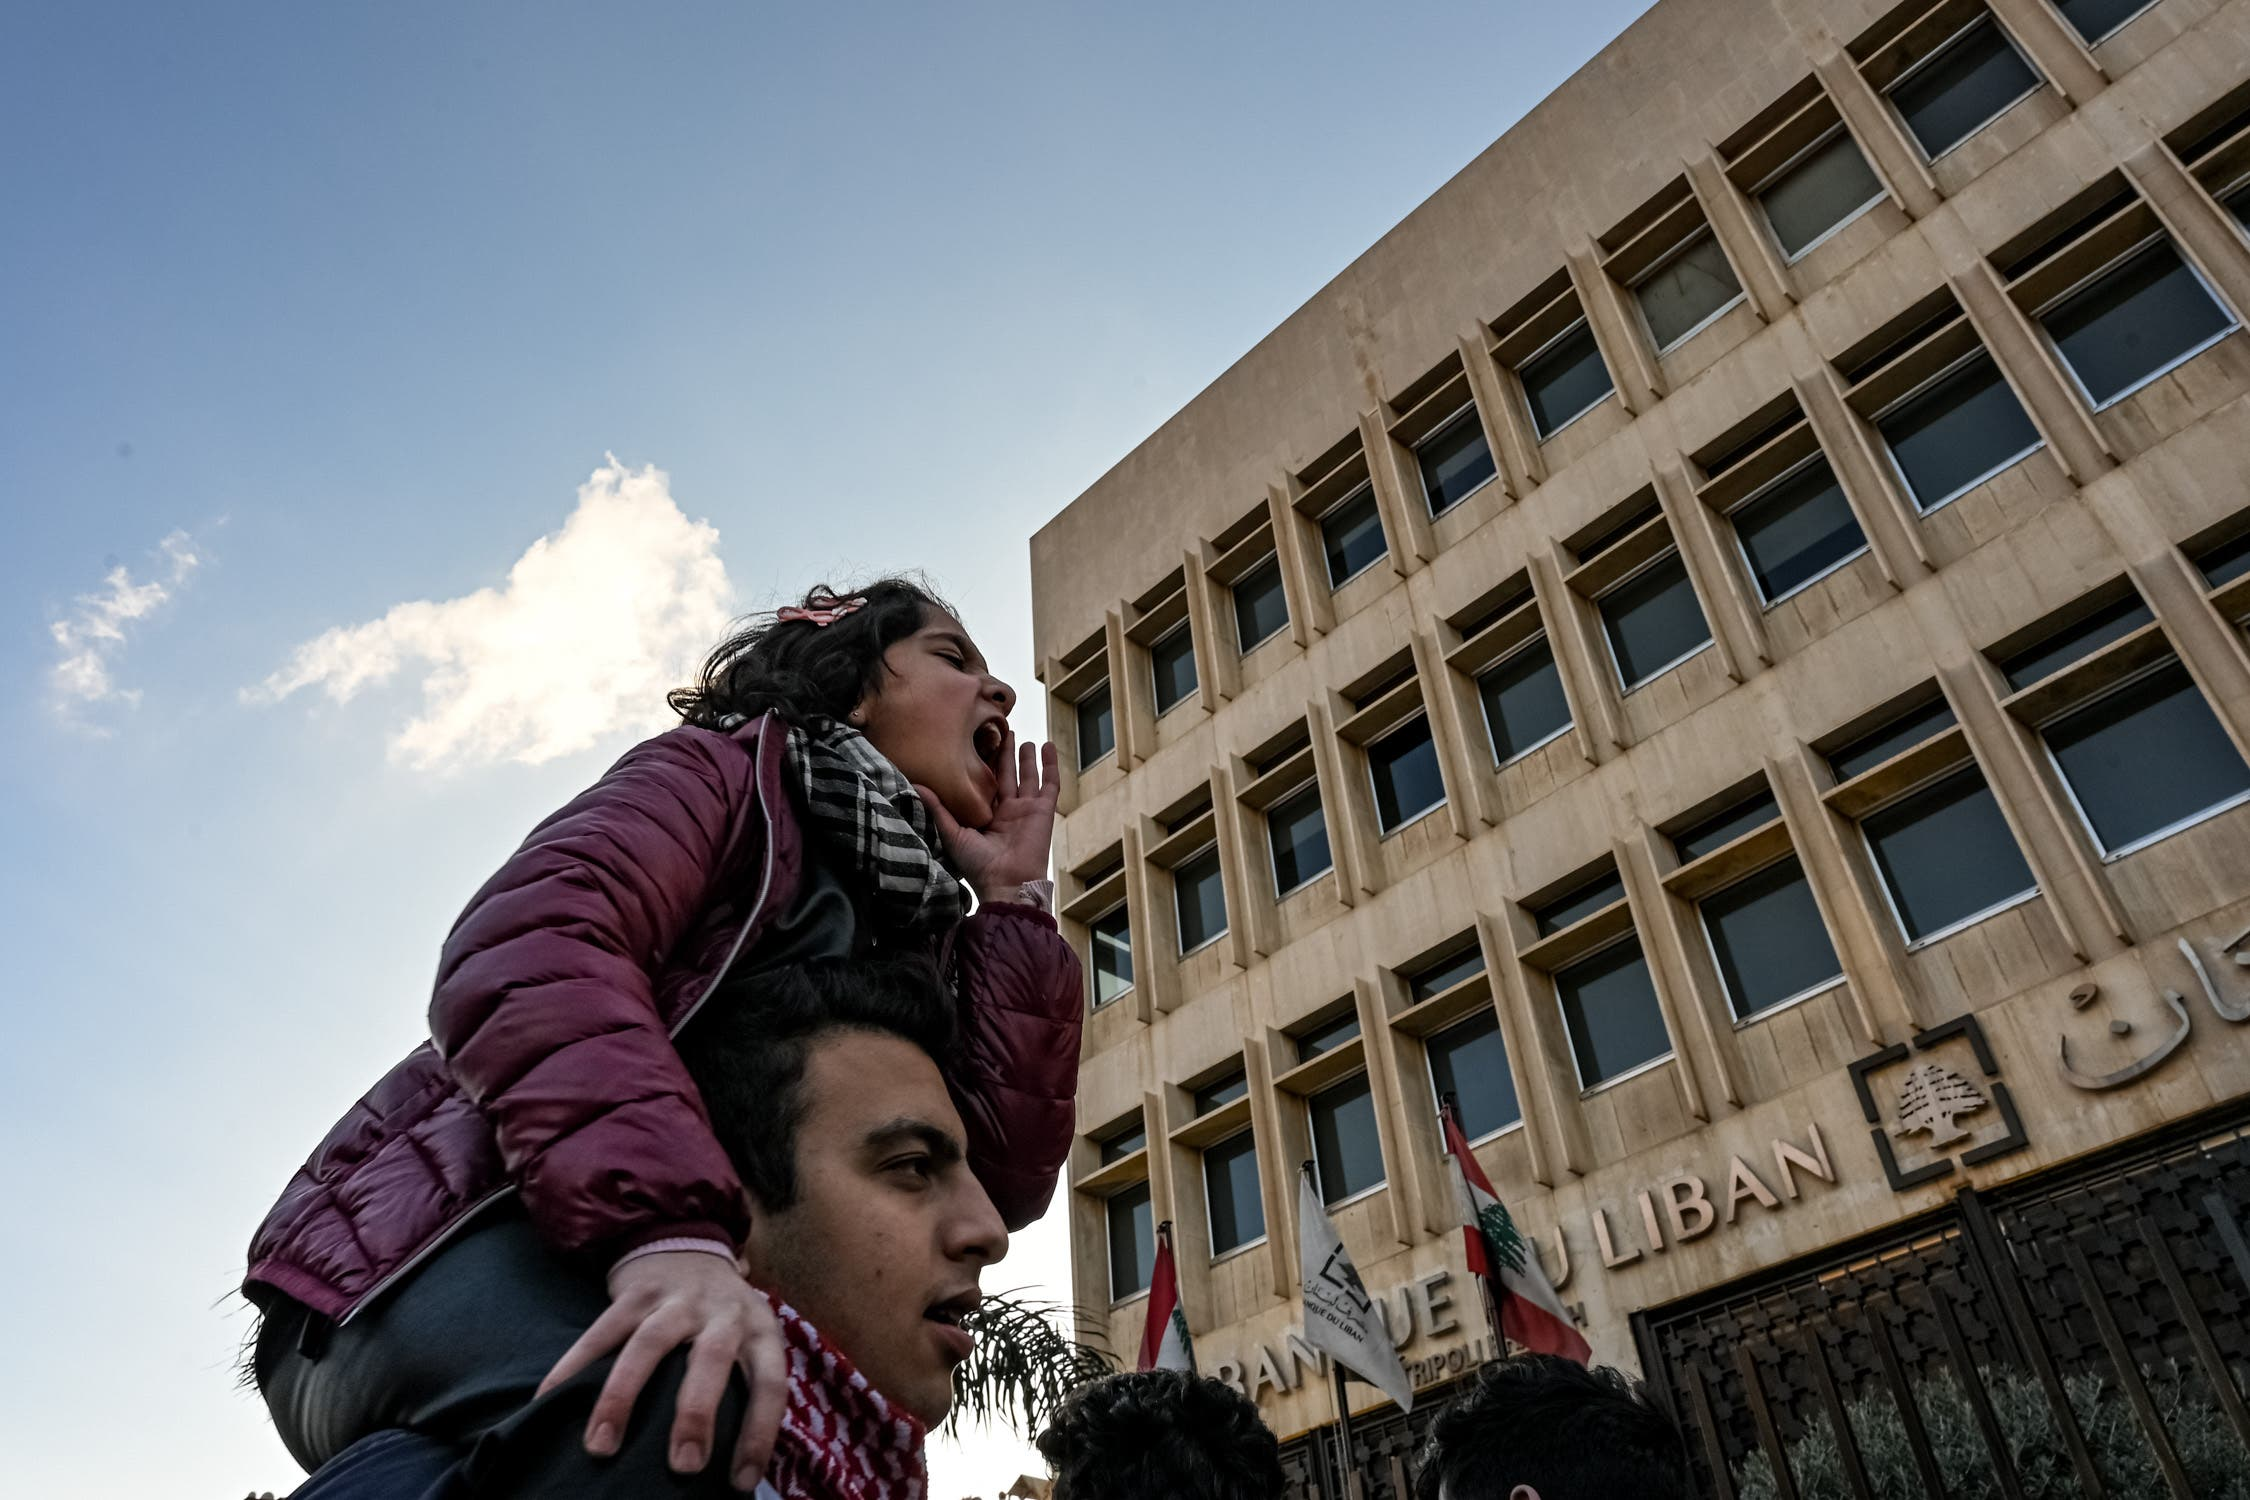 A young girl leads a chant at a protest in front of Tripoli's central bank. (Finbar Anderson)